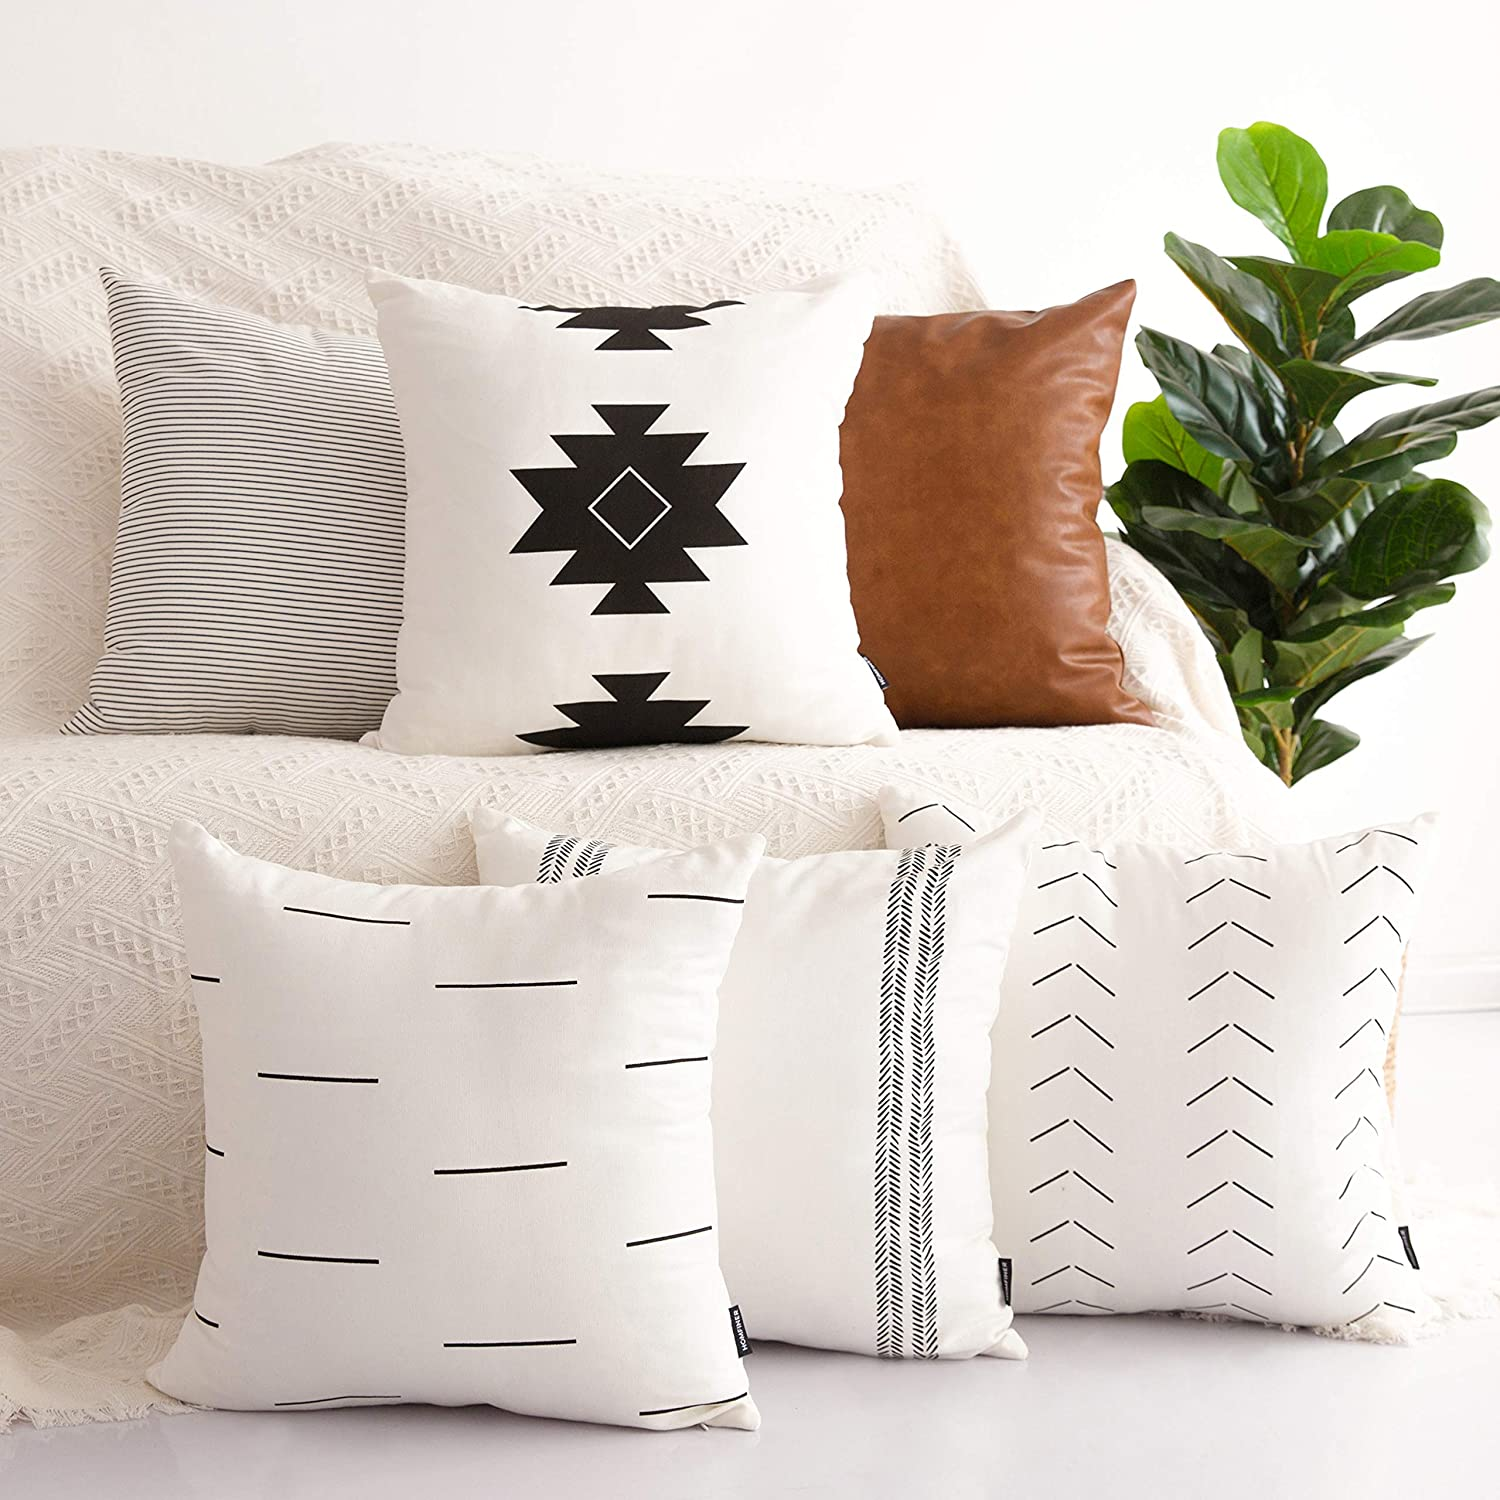 Amazon Com Homfiner Decorative Throw Pillow Covers For Couch Set Of 6 100 Cotton Modern Design Stripes Geometric Bed Or Sofa Pillows Case Faux Leather 18 X 18 Inch Kitchen Dining